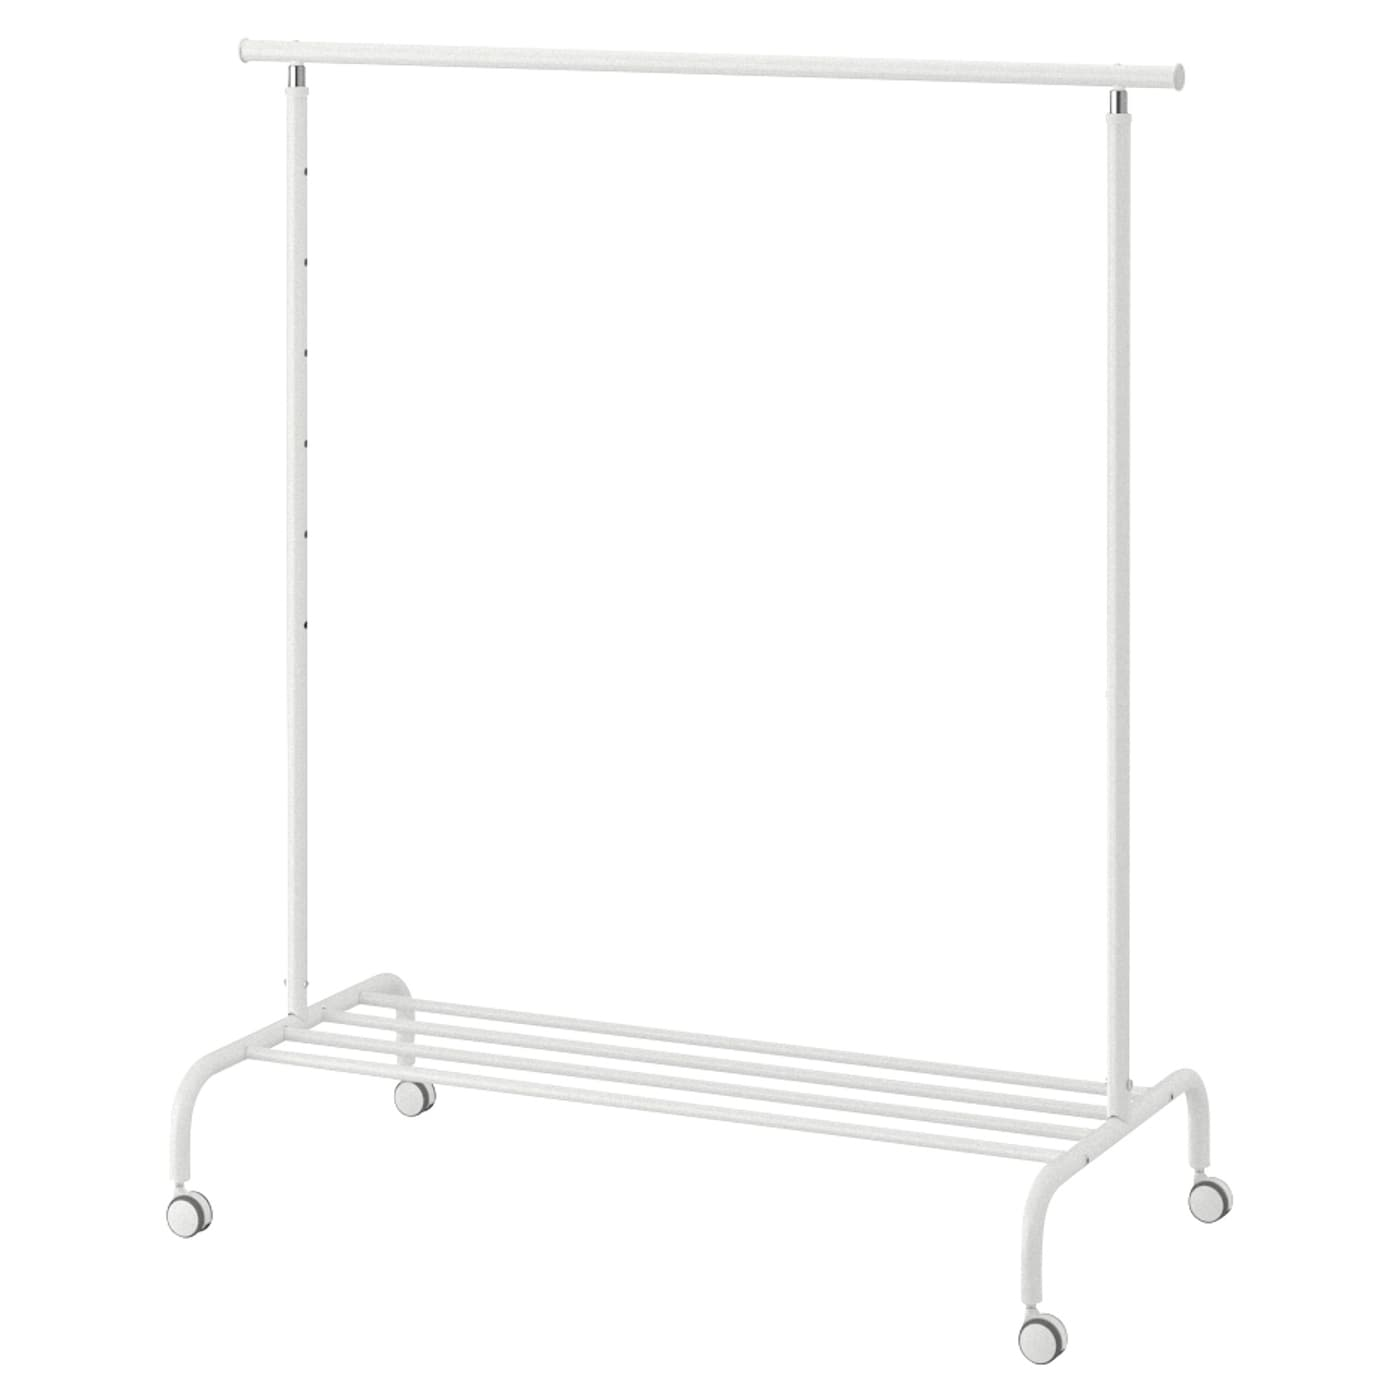 Clothes rack RIGGA white